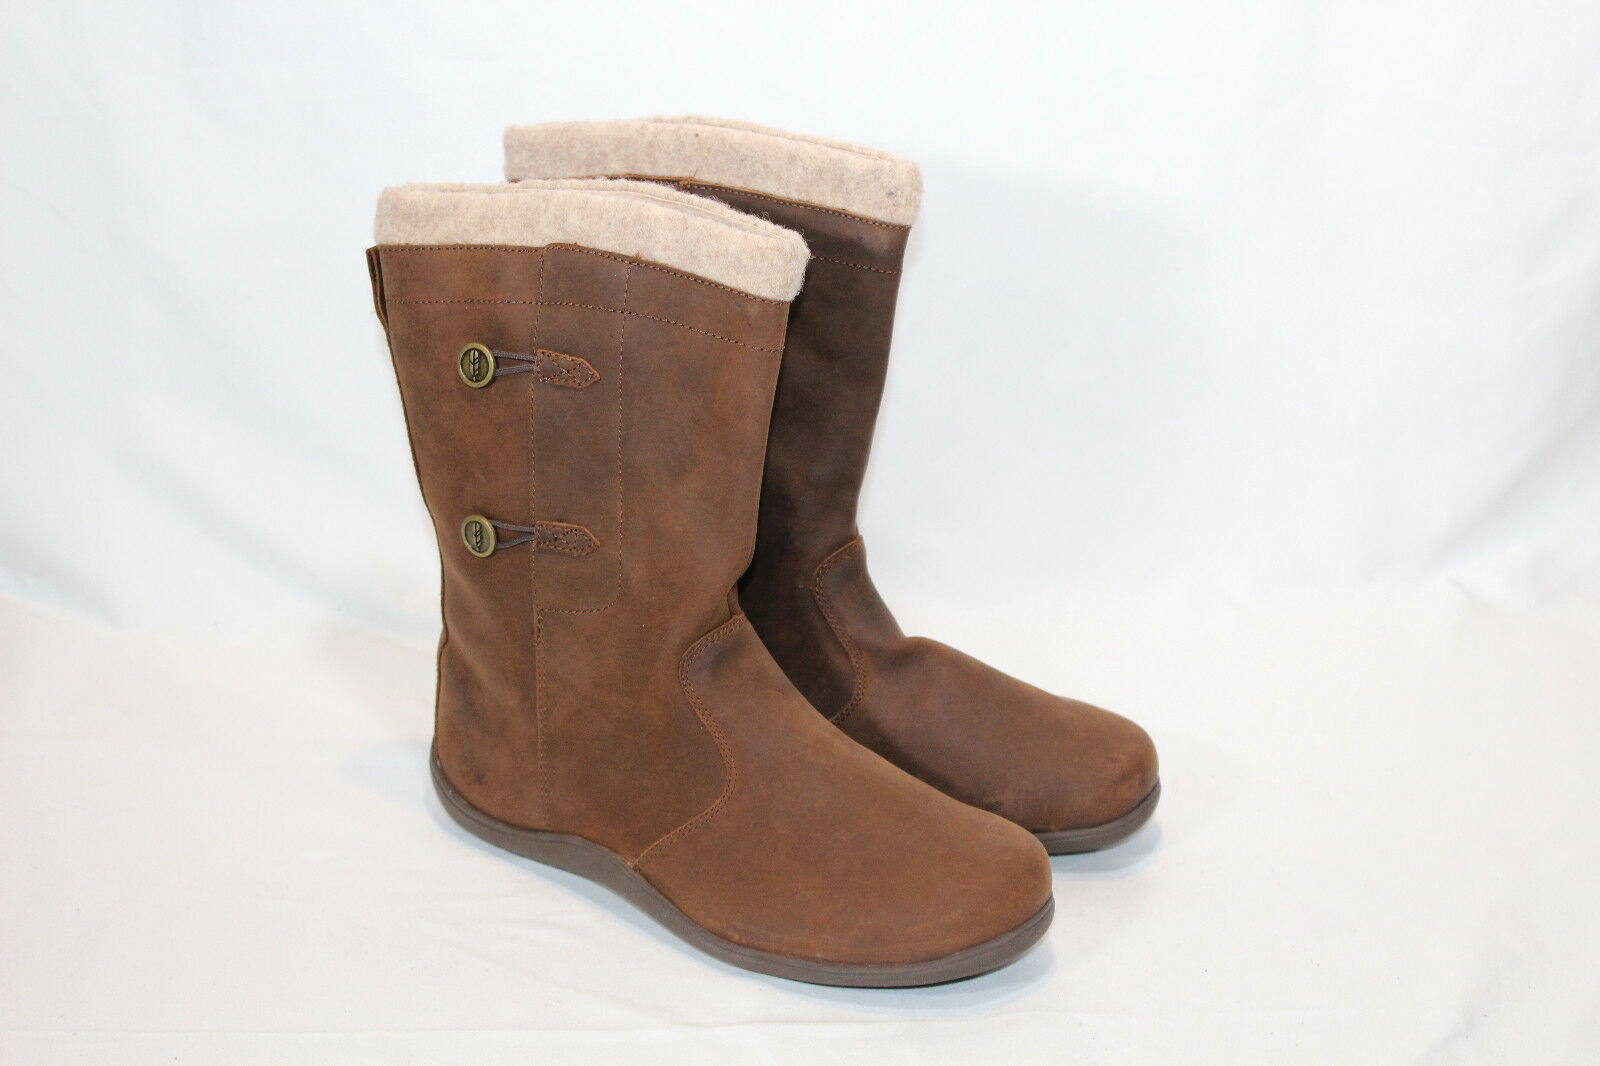 Sabara 9 medium brown leather winter boots